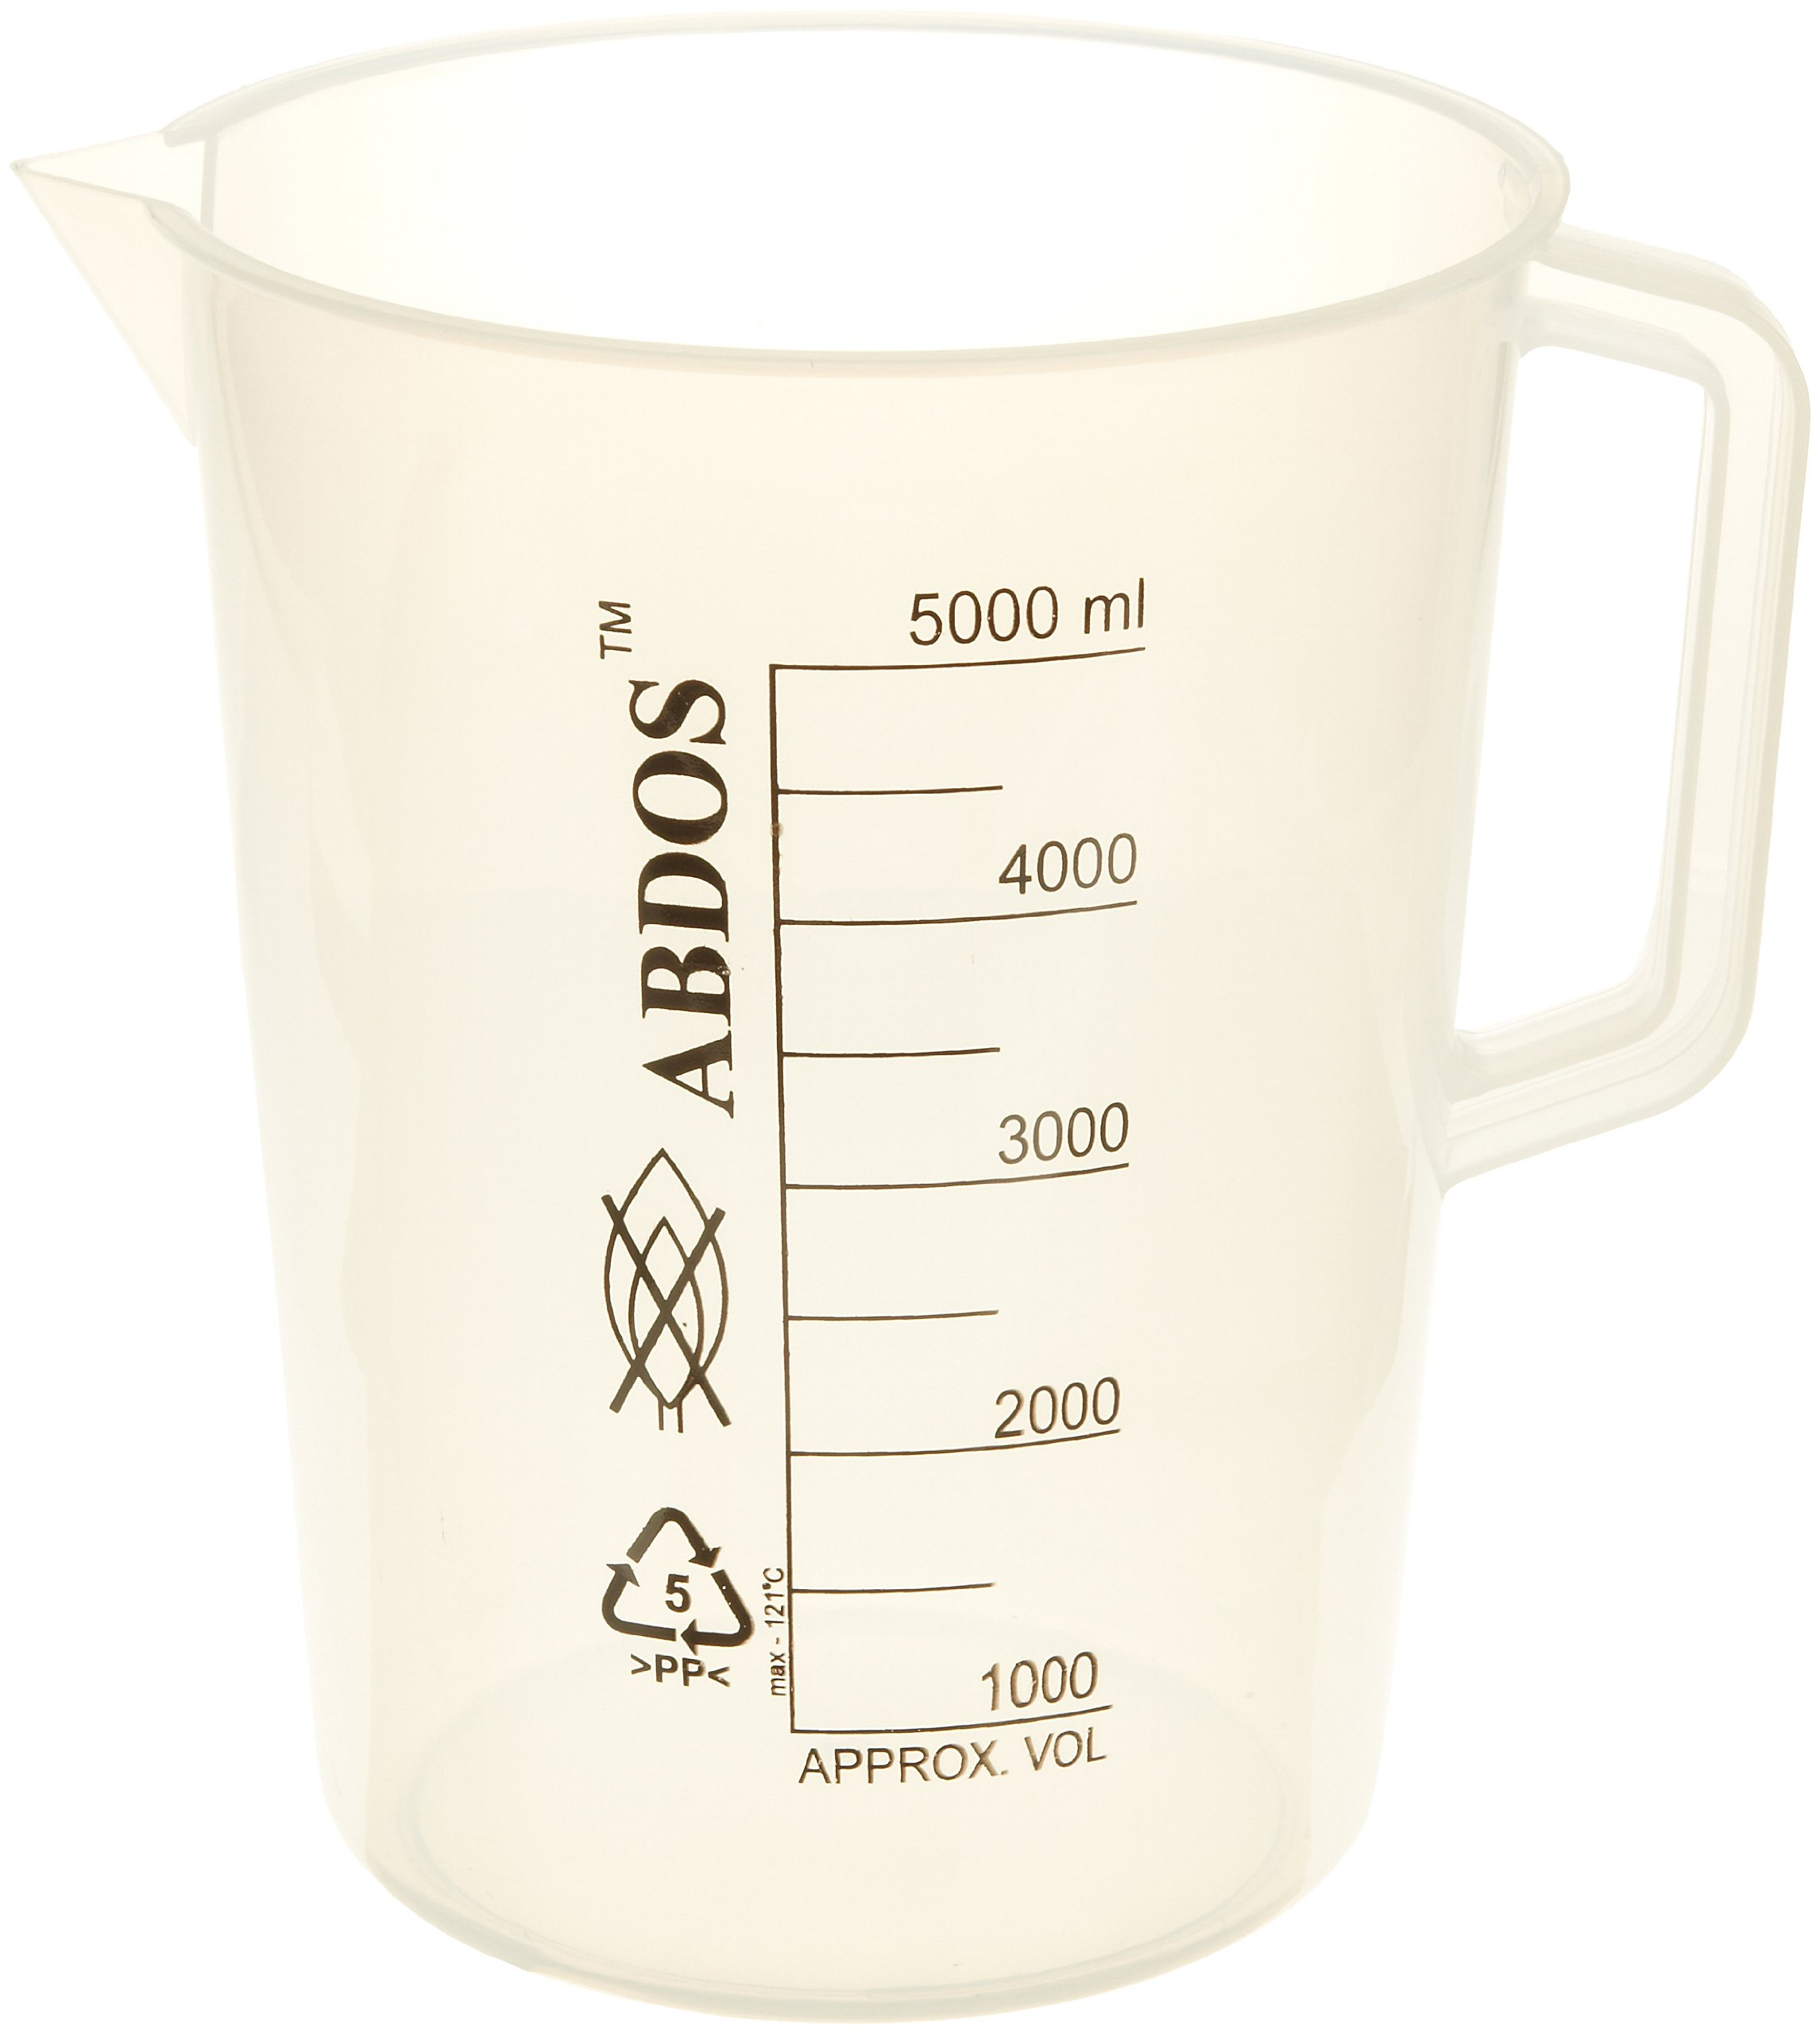 United Scientific P50807 Polypropylene Pitchers with Printed Graduations, 5000ml Capacity (Pack of 2)